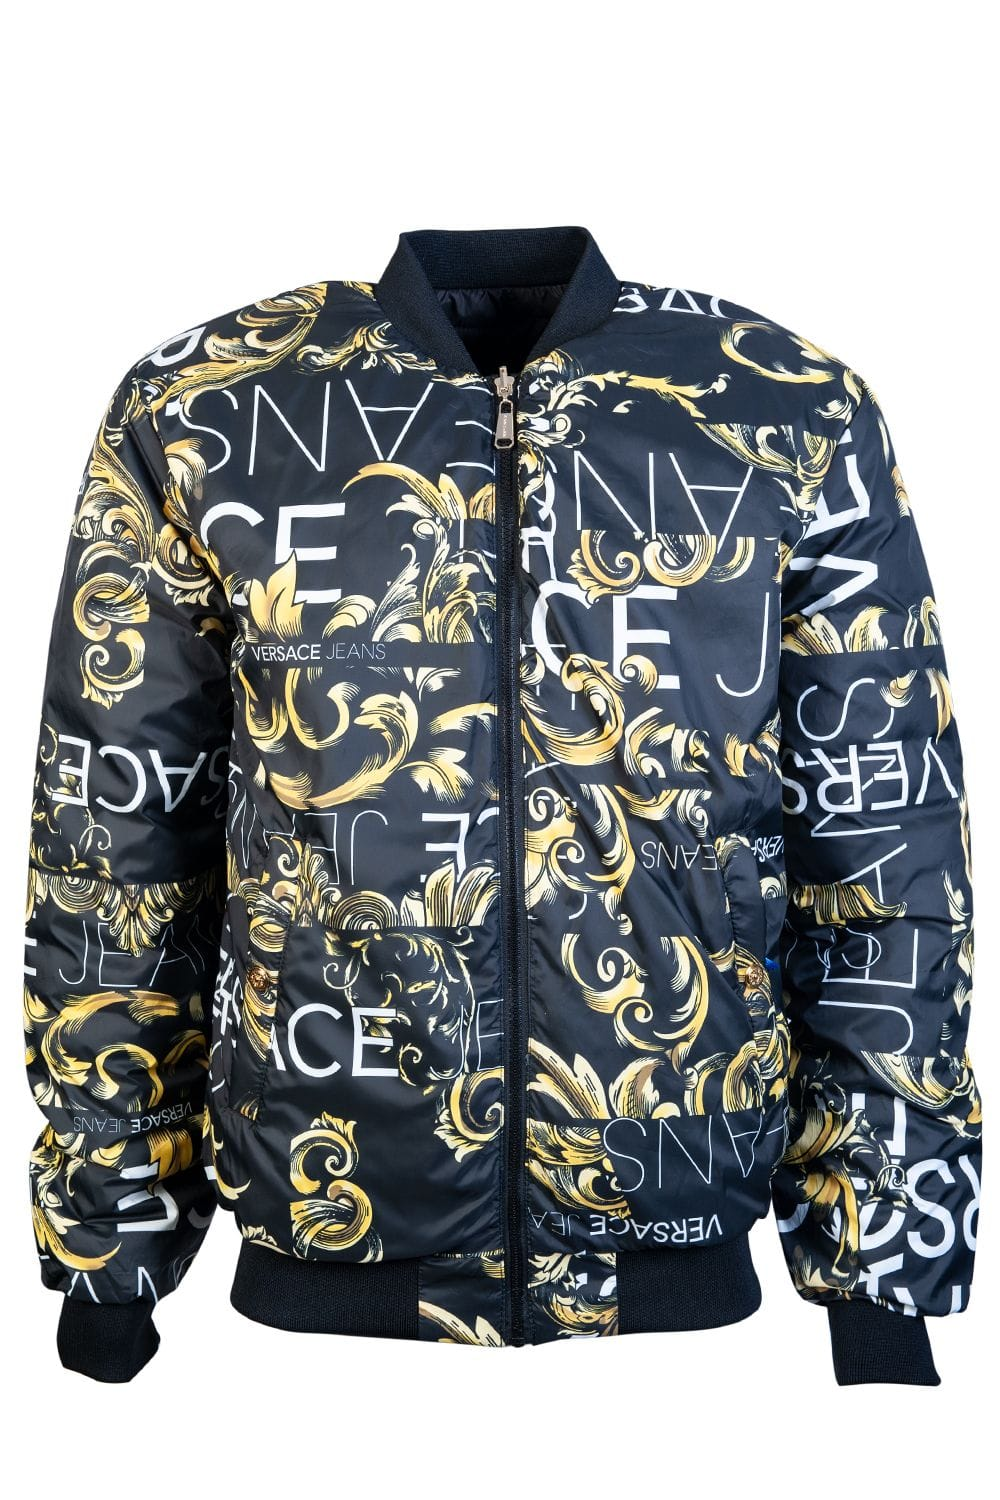 261c1a2acc Versace Jacket Reversible E5GTA903 25050 - Clothing from Sage Clothing UK